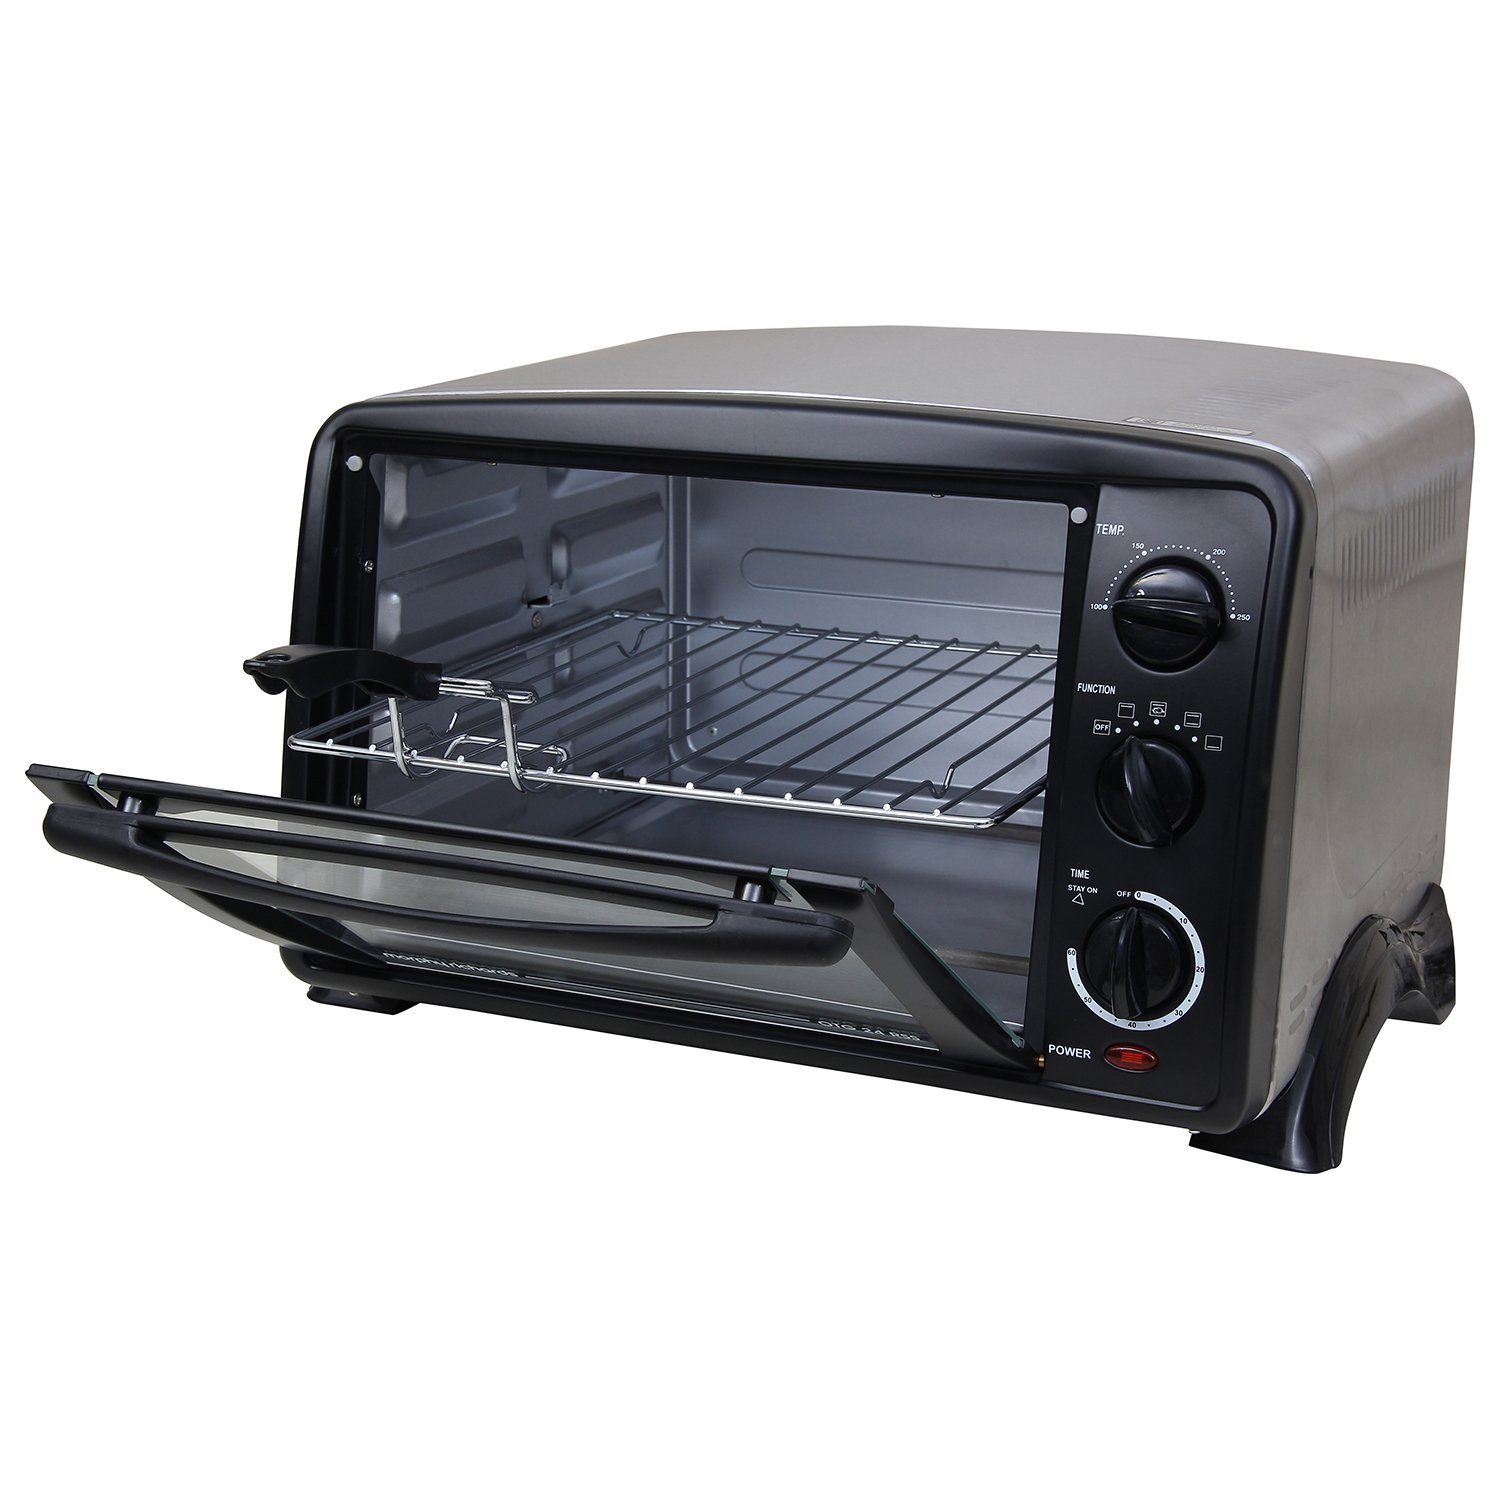 Morphy Richards 24rss 24L Oven Toaster Grill